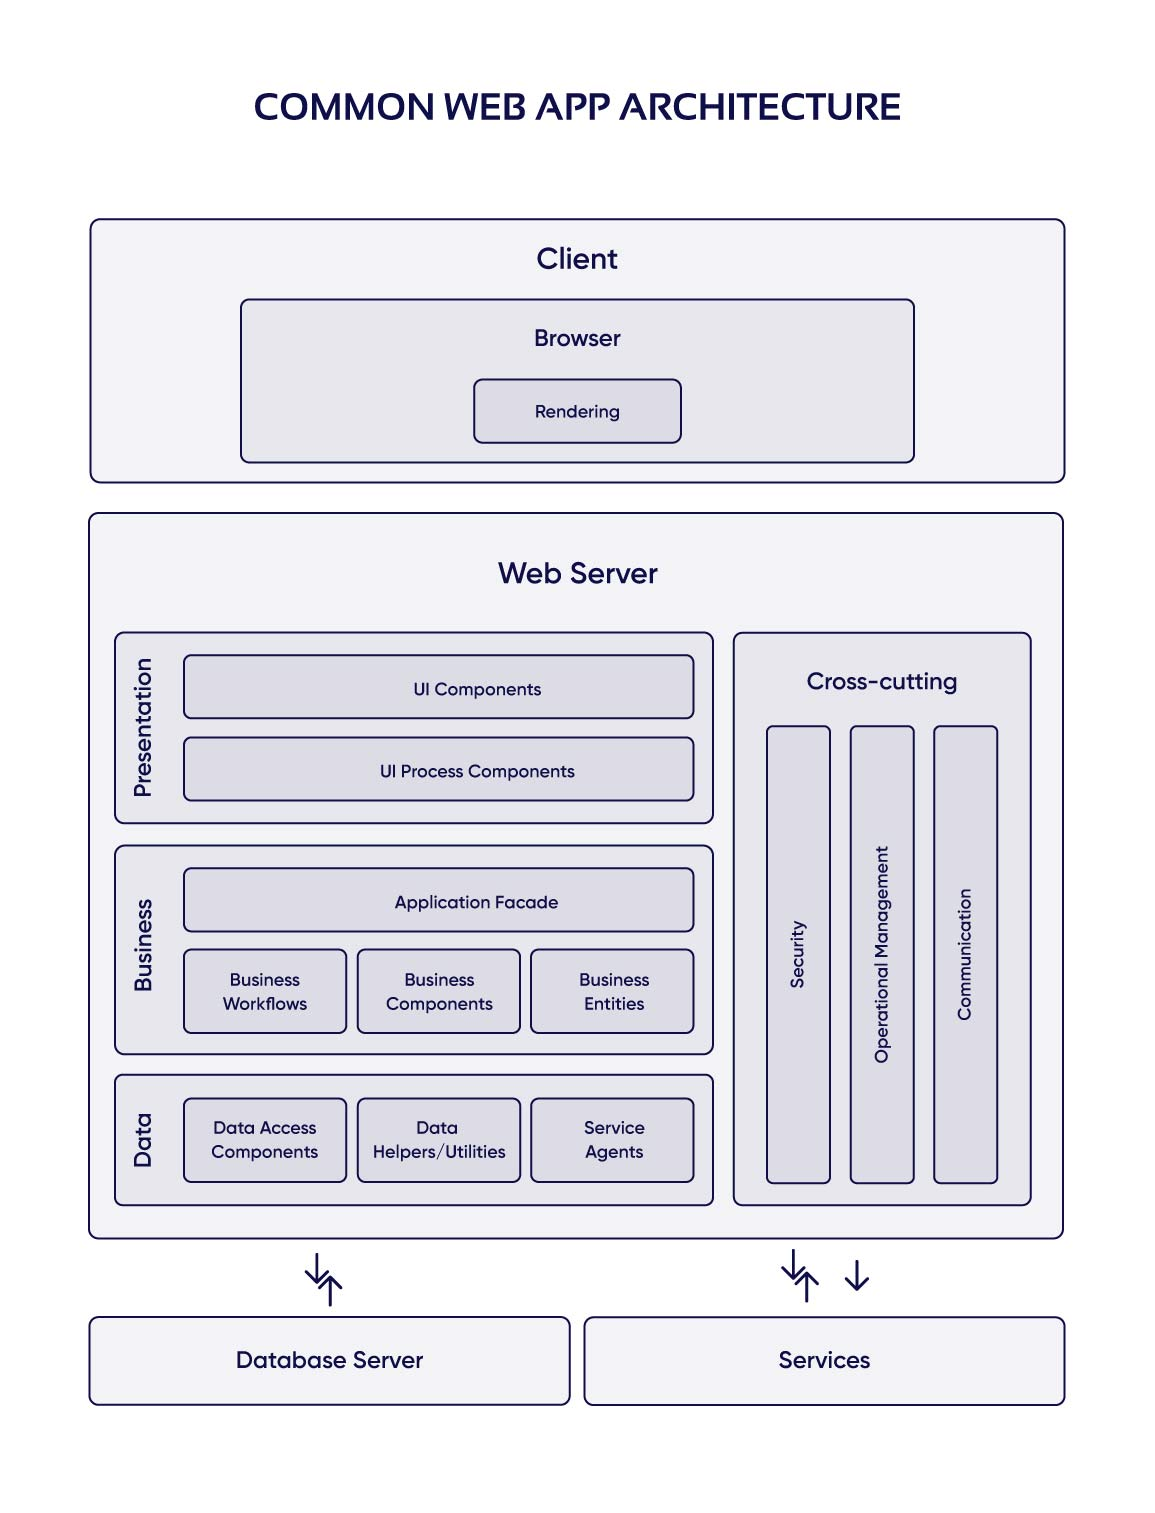 Common web app architecture diagram